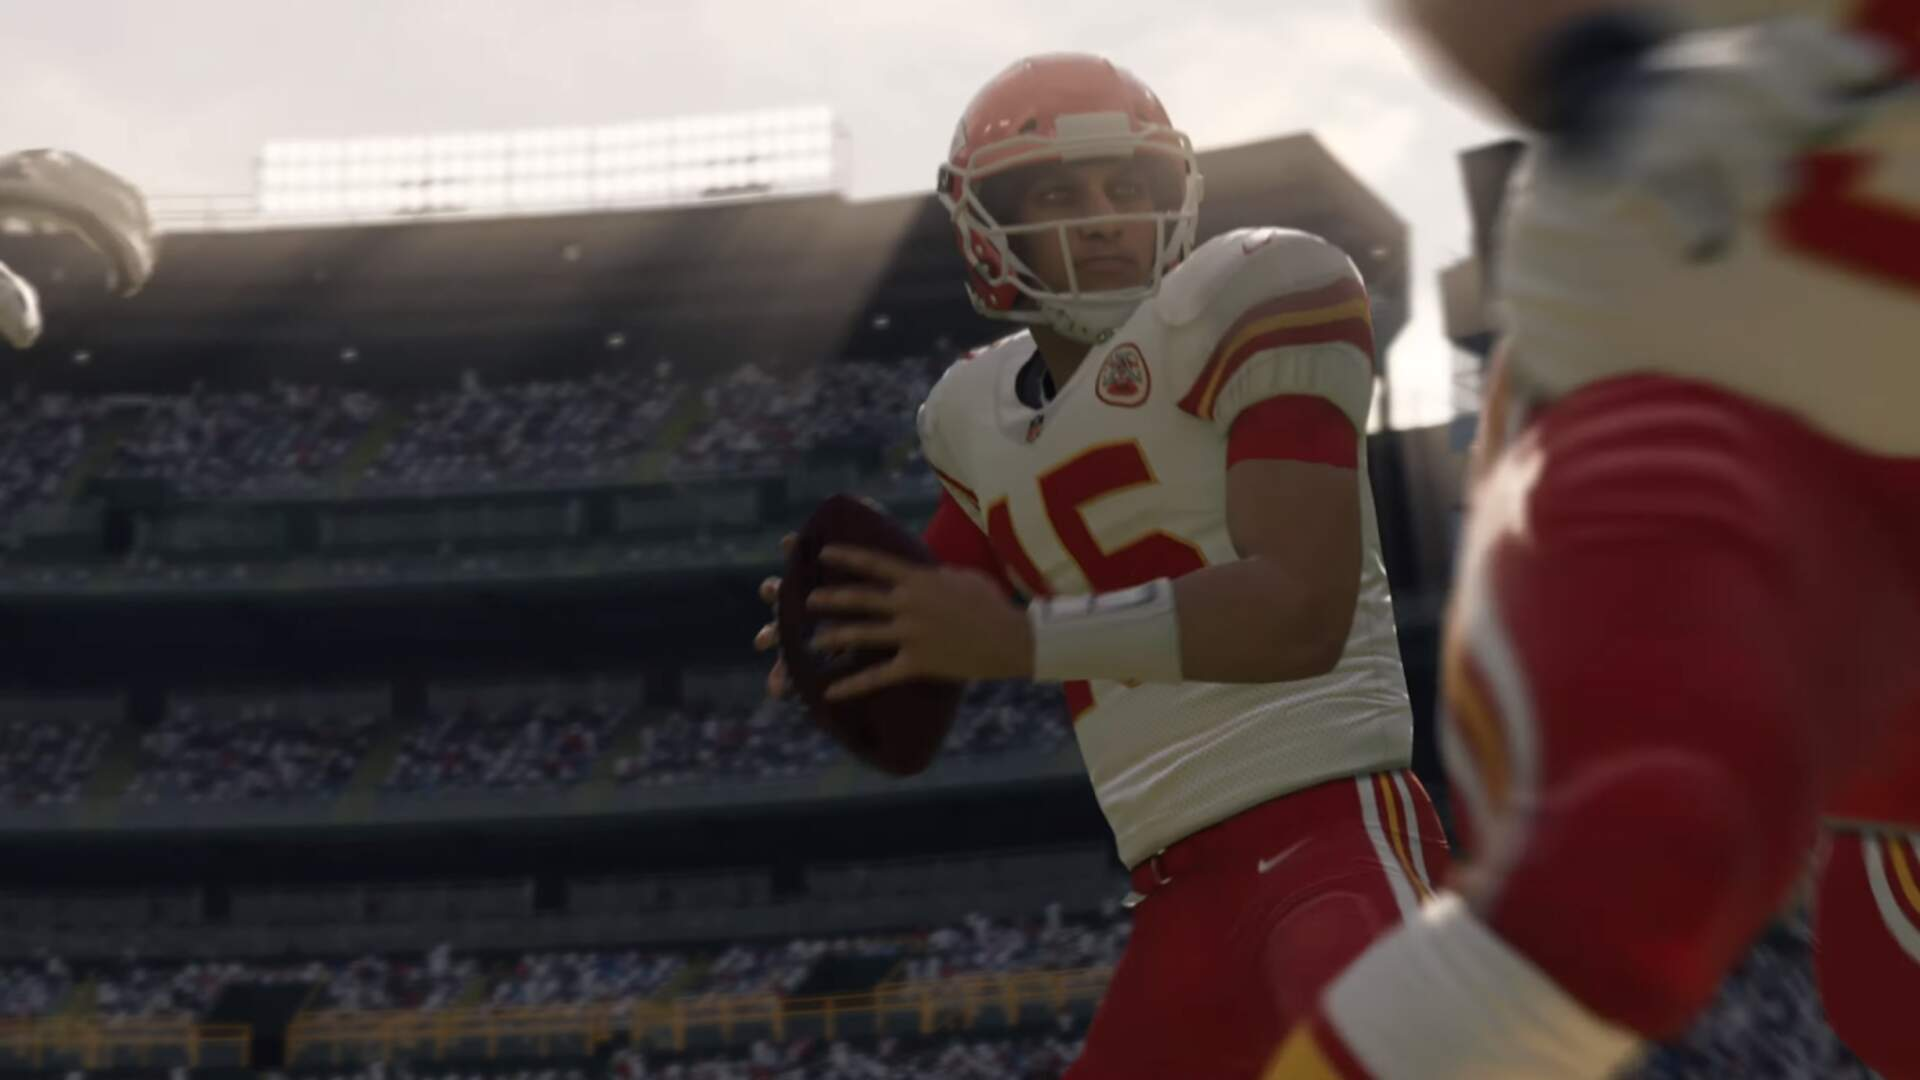 Madden NFL 21 Revealed, Will Support Next-Gen Upgrade [Update]